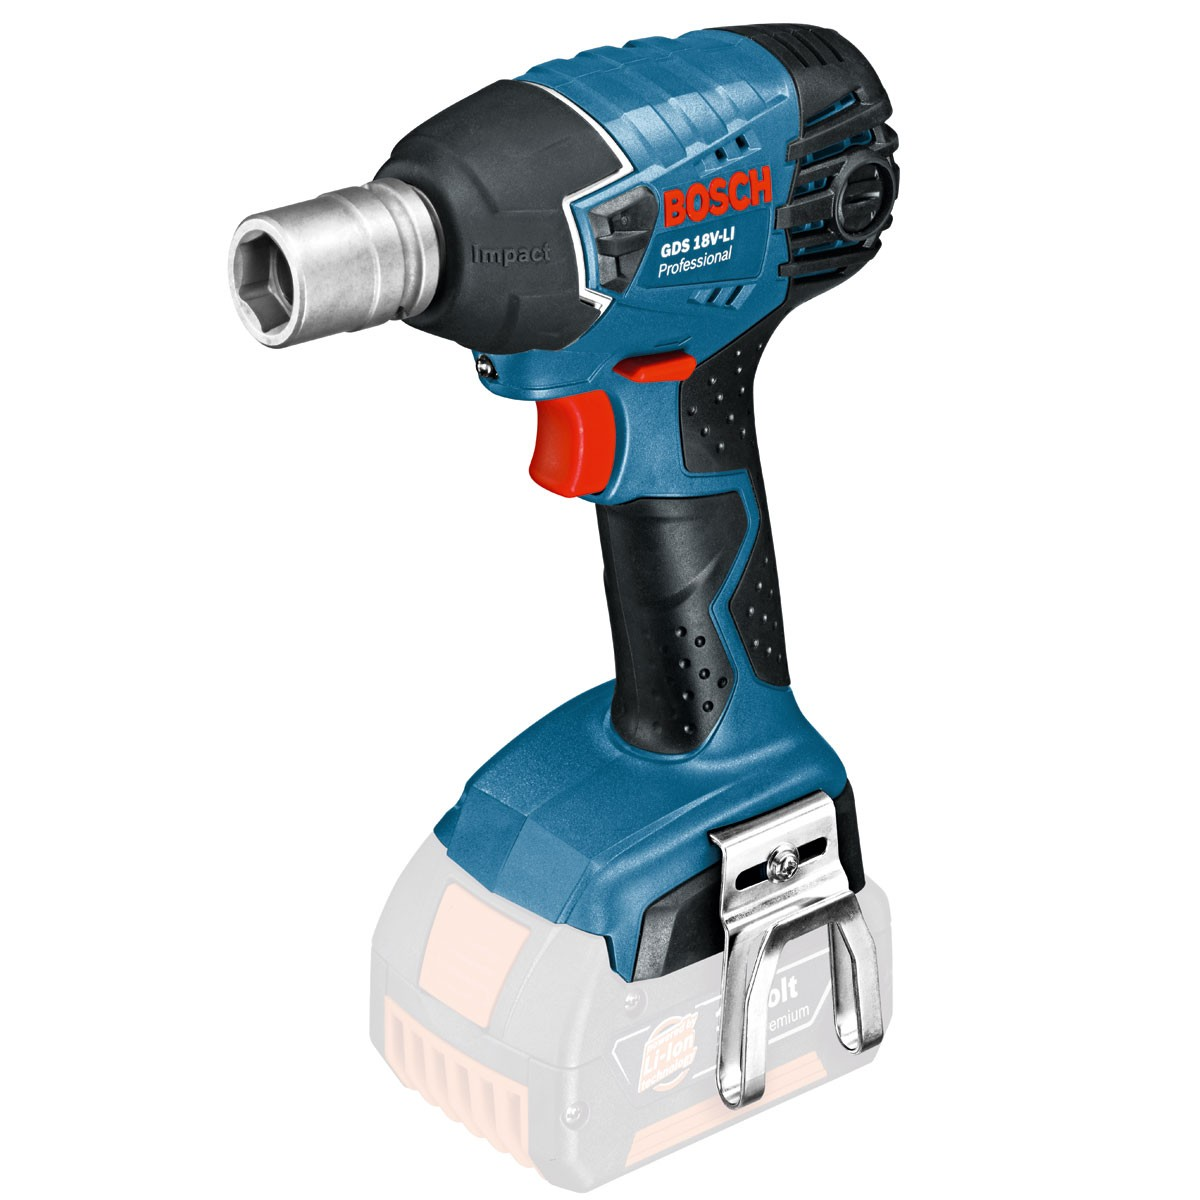 bosch gds 18 v li cordless impact wrench body only powertool world. Black Bedroom Furniture Sets. Home Design Ideas